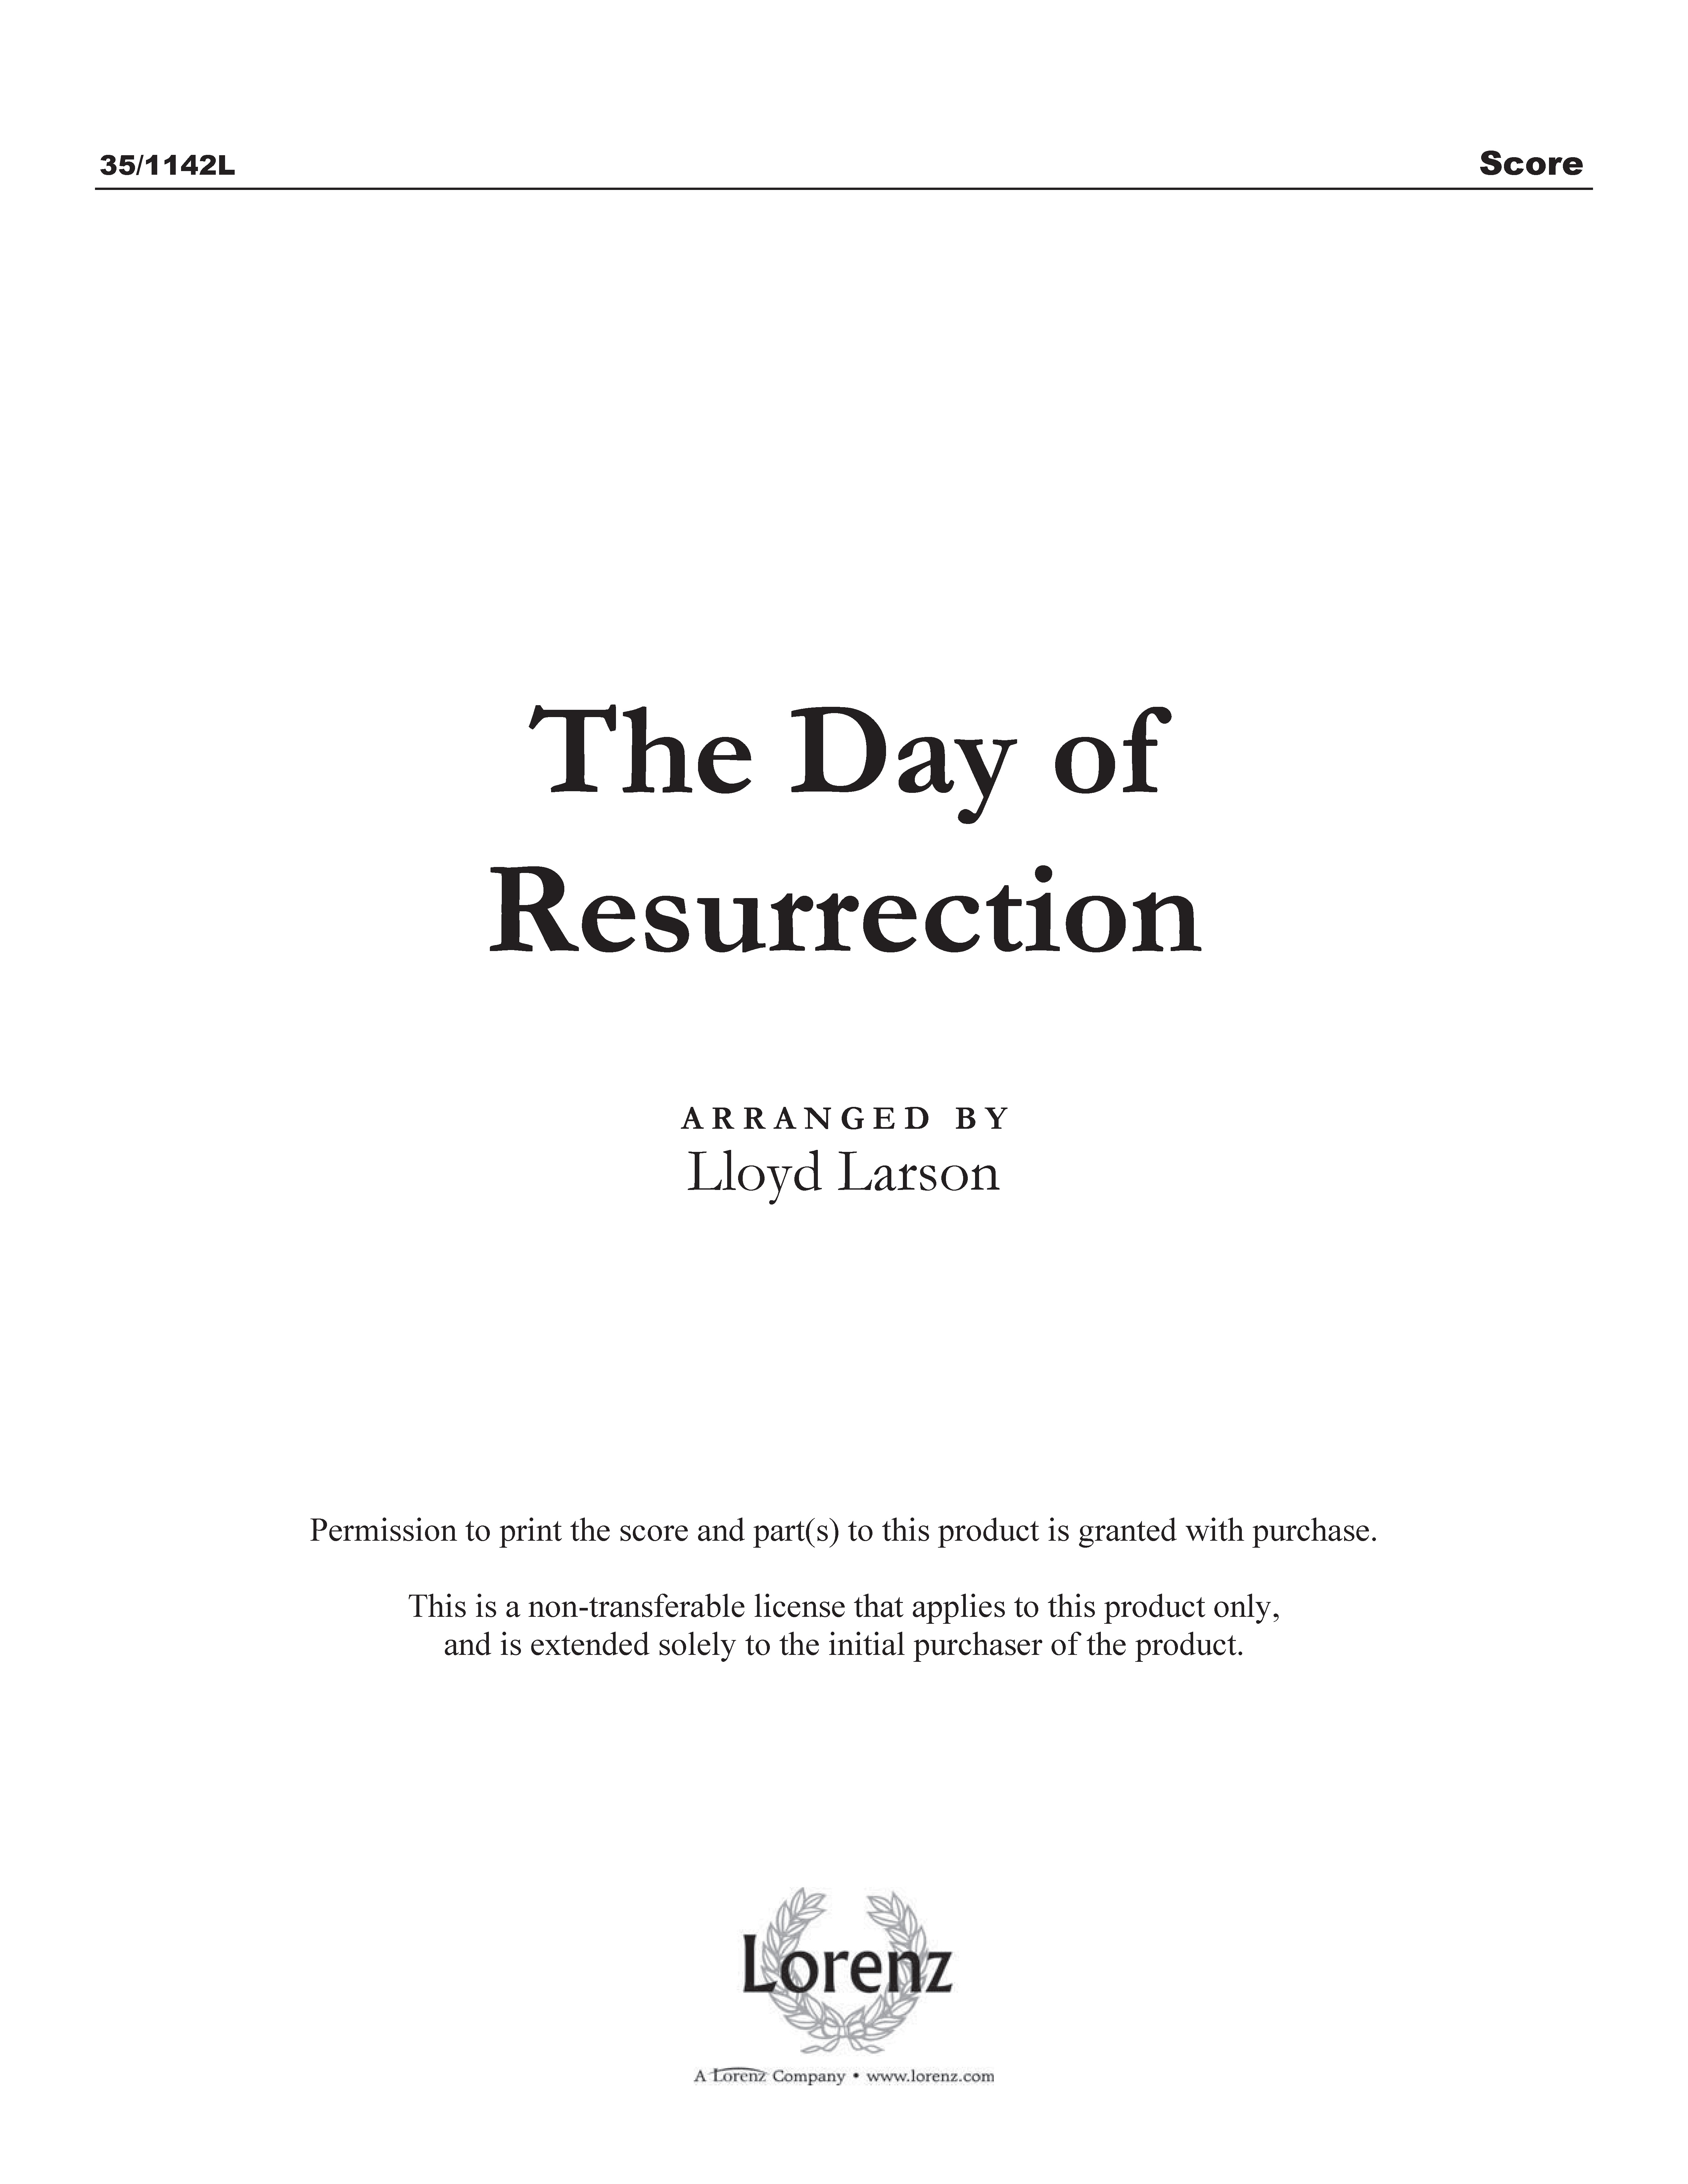 The Day of Resurrection (Digital Delivery)